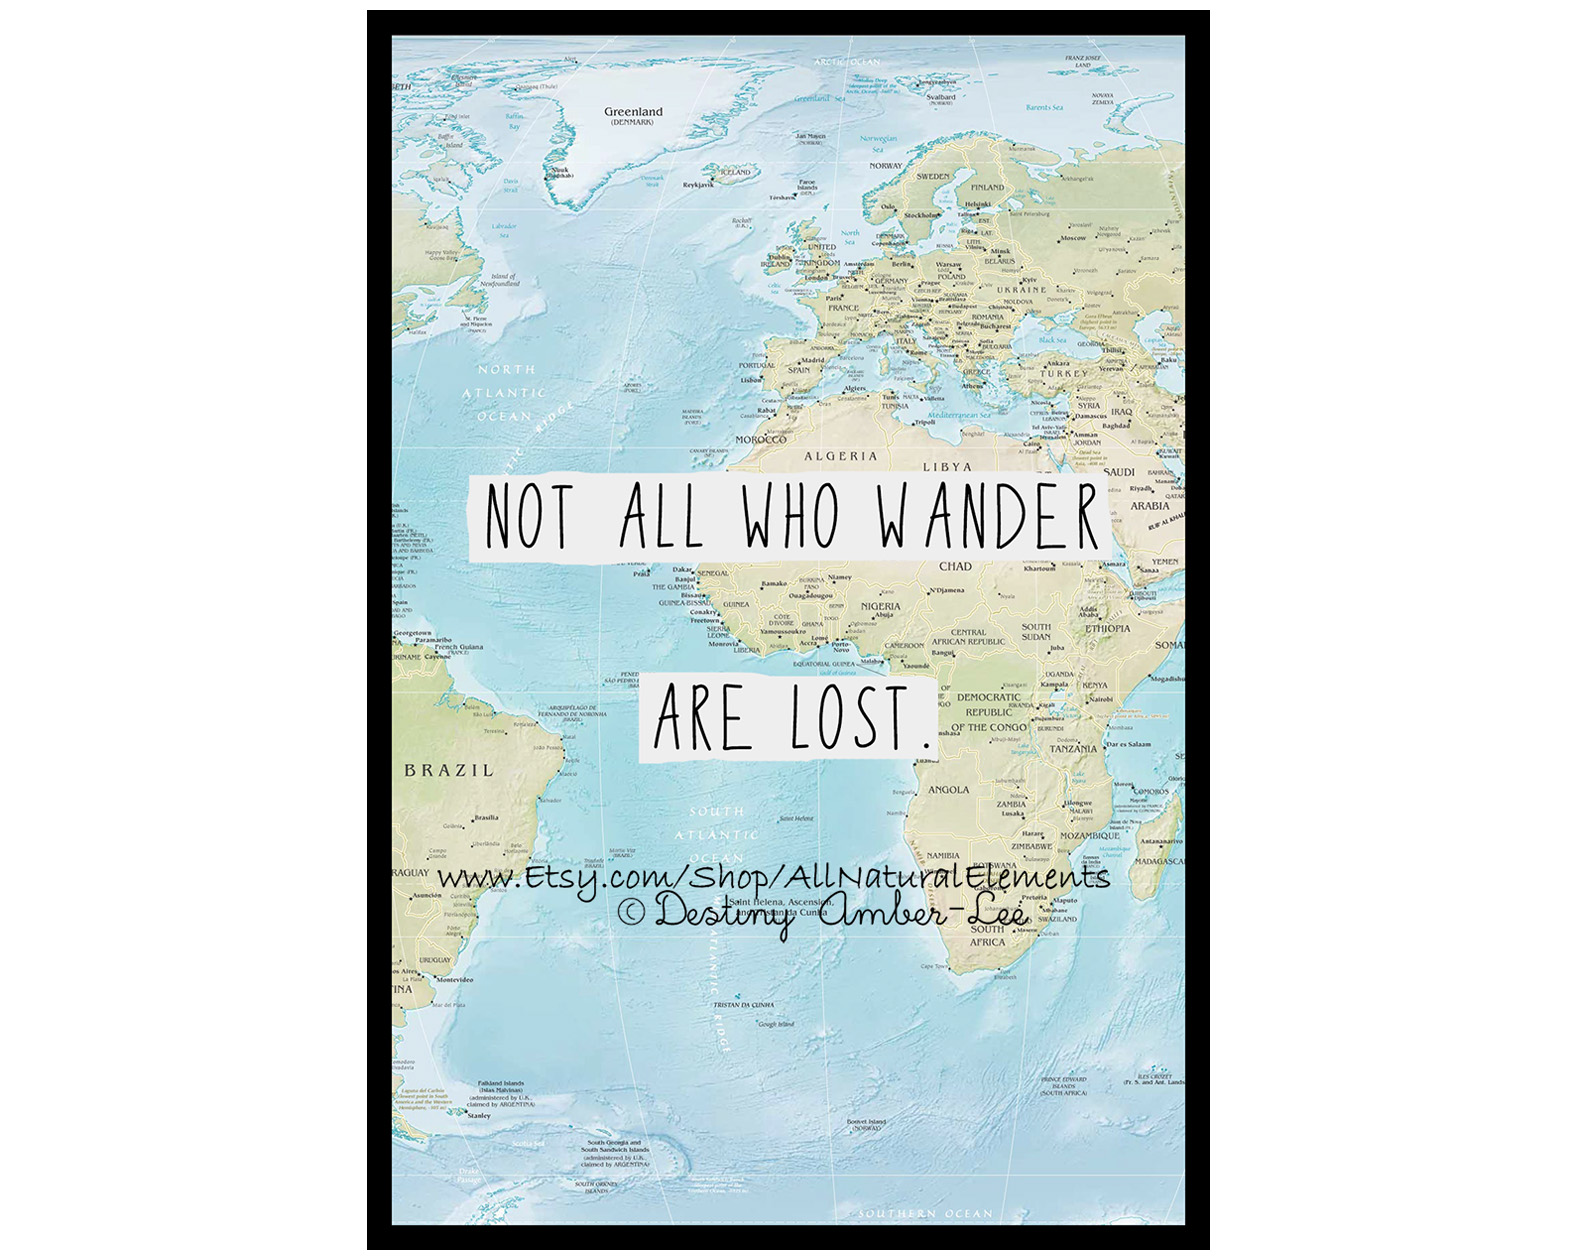 Not all who wander are lost world map quote print high quality not all who wander are lost world map quote print high quality poster gumiabroncs Gallery